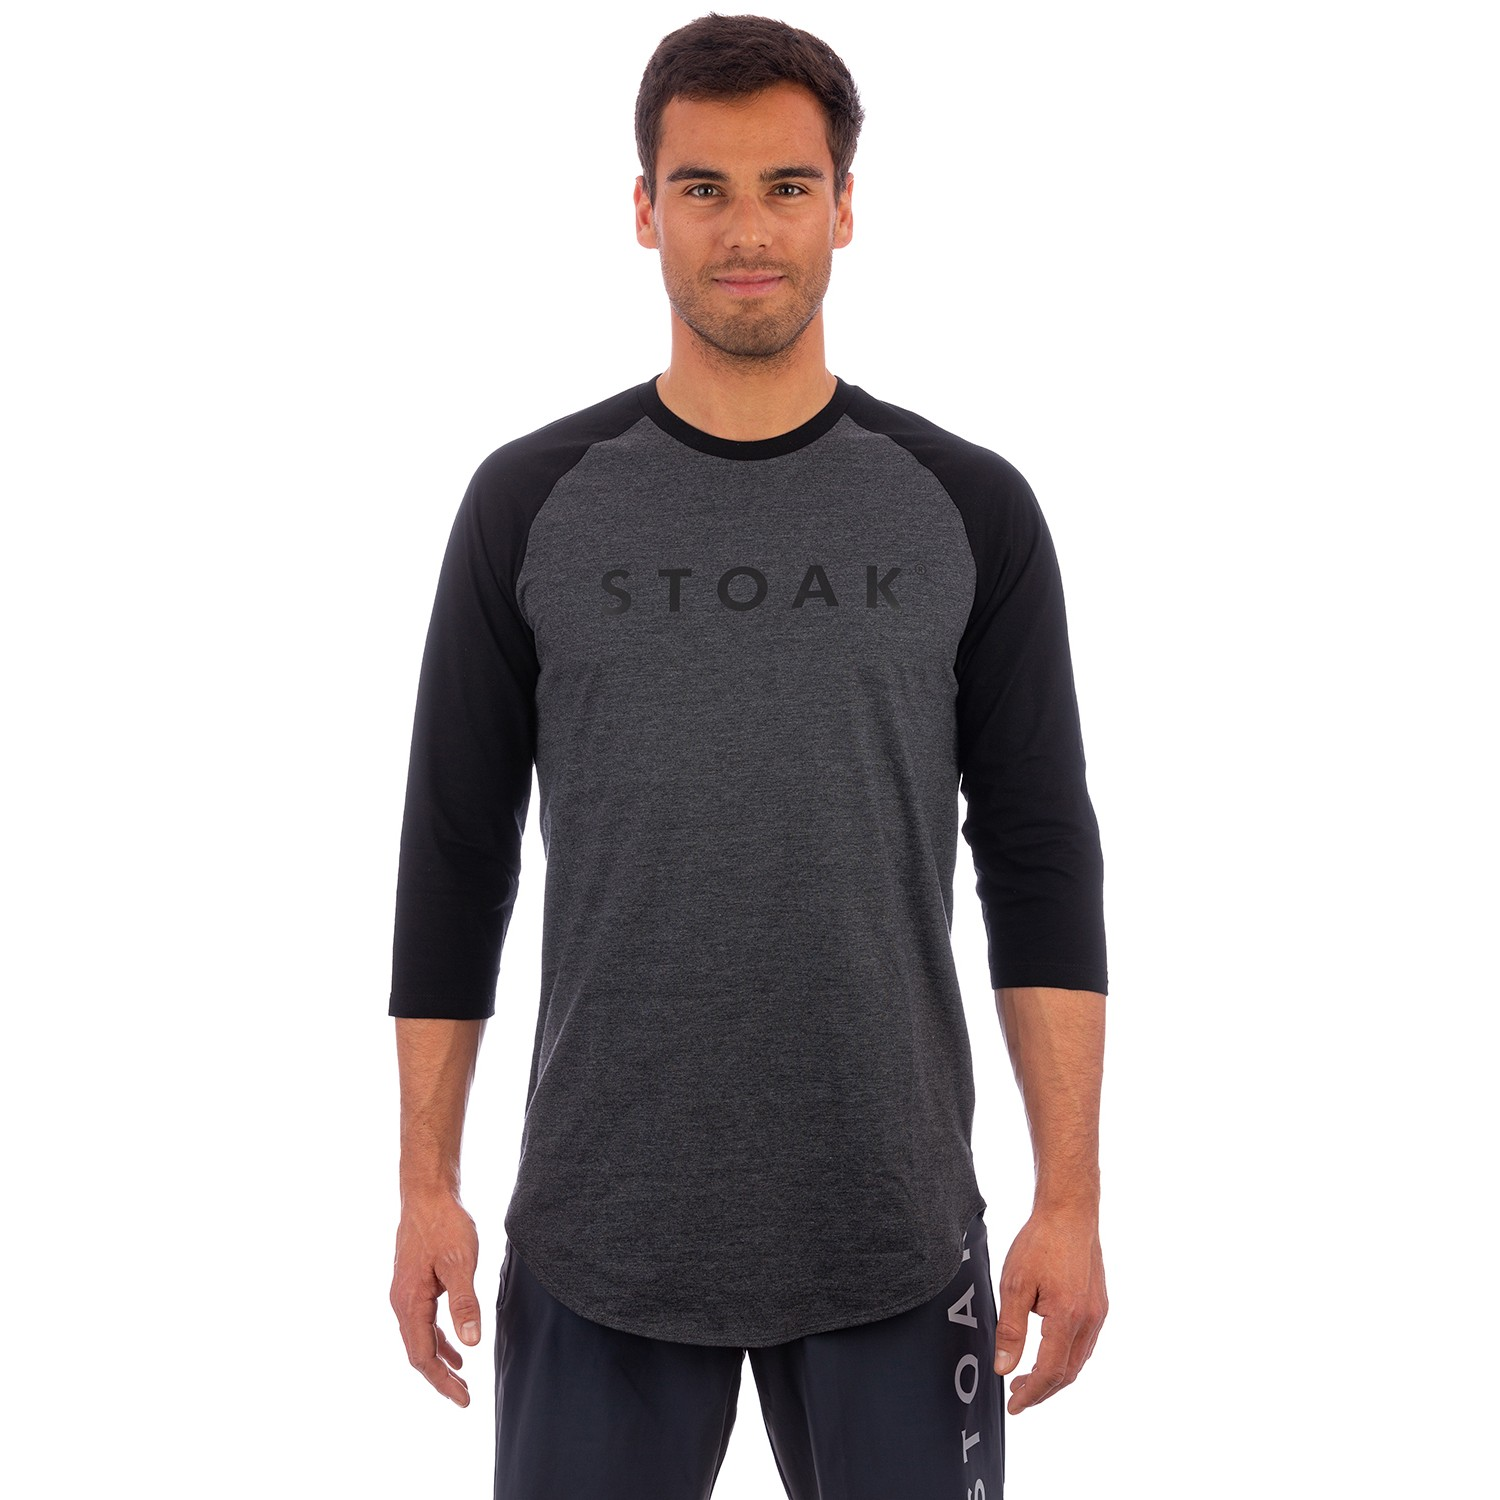 STOAK DANGER Unisex Raglan Shirt